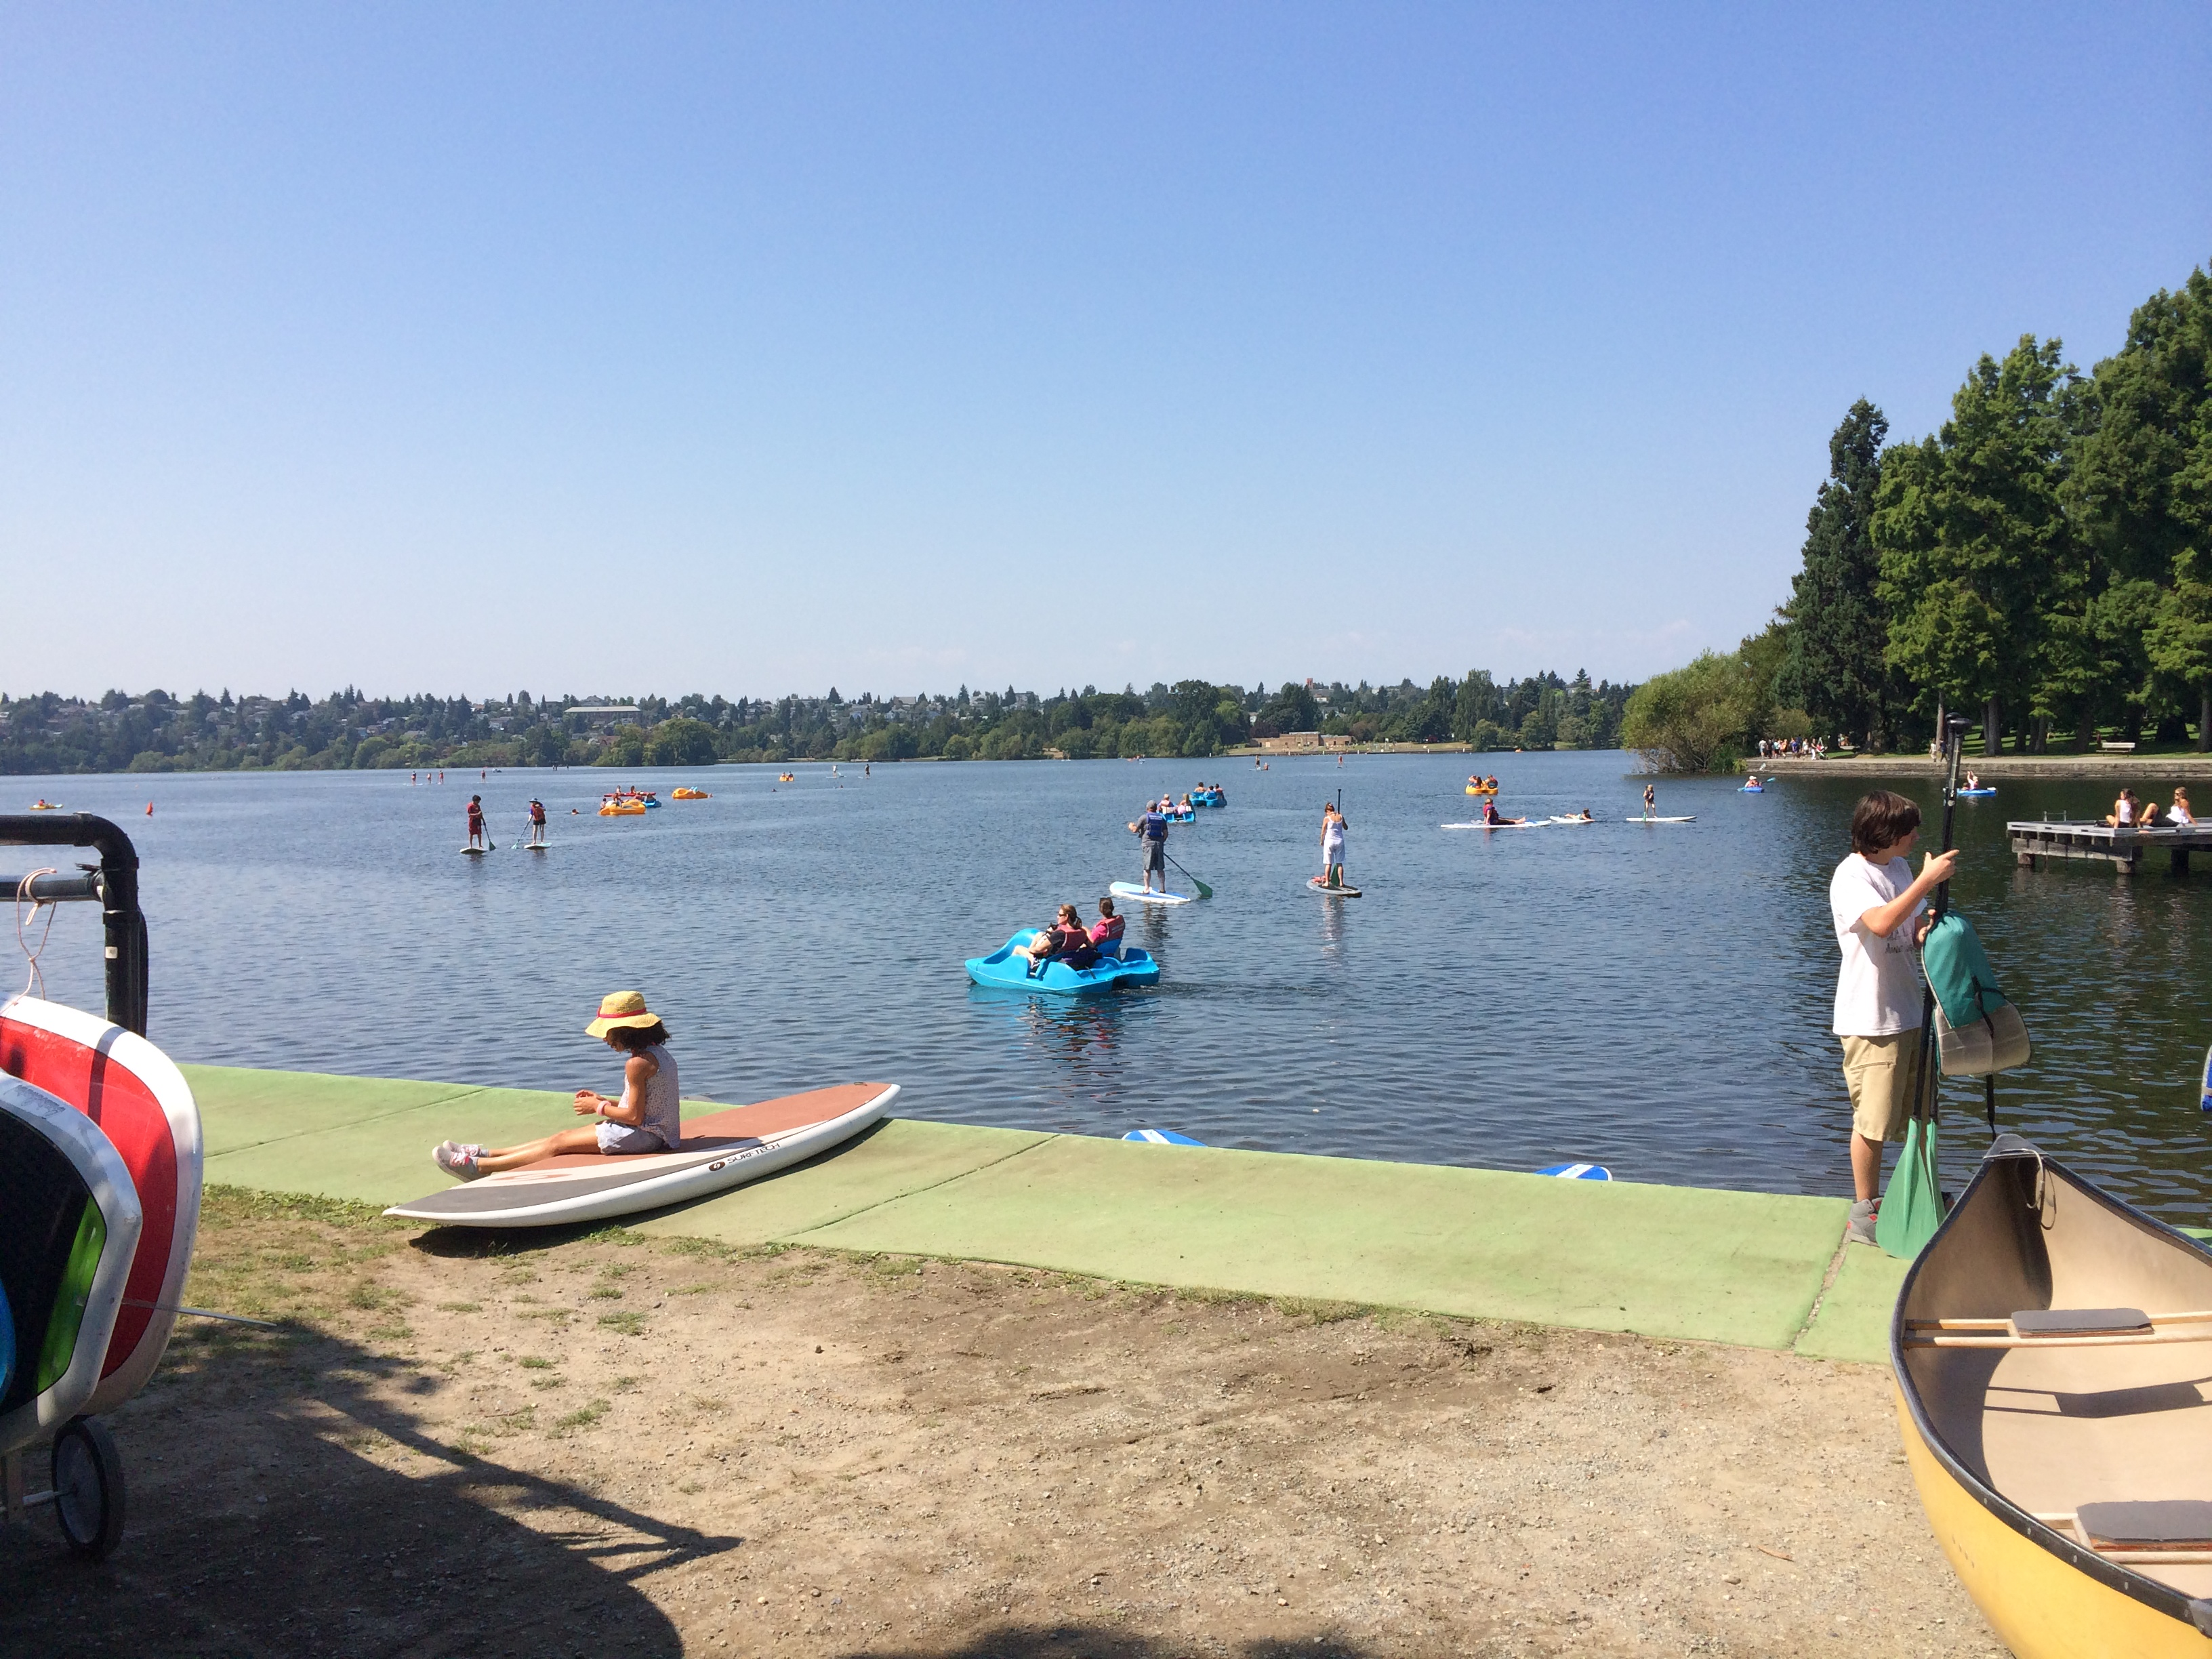 Greenlake – Swimming area